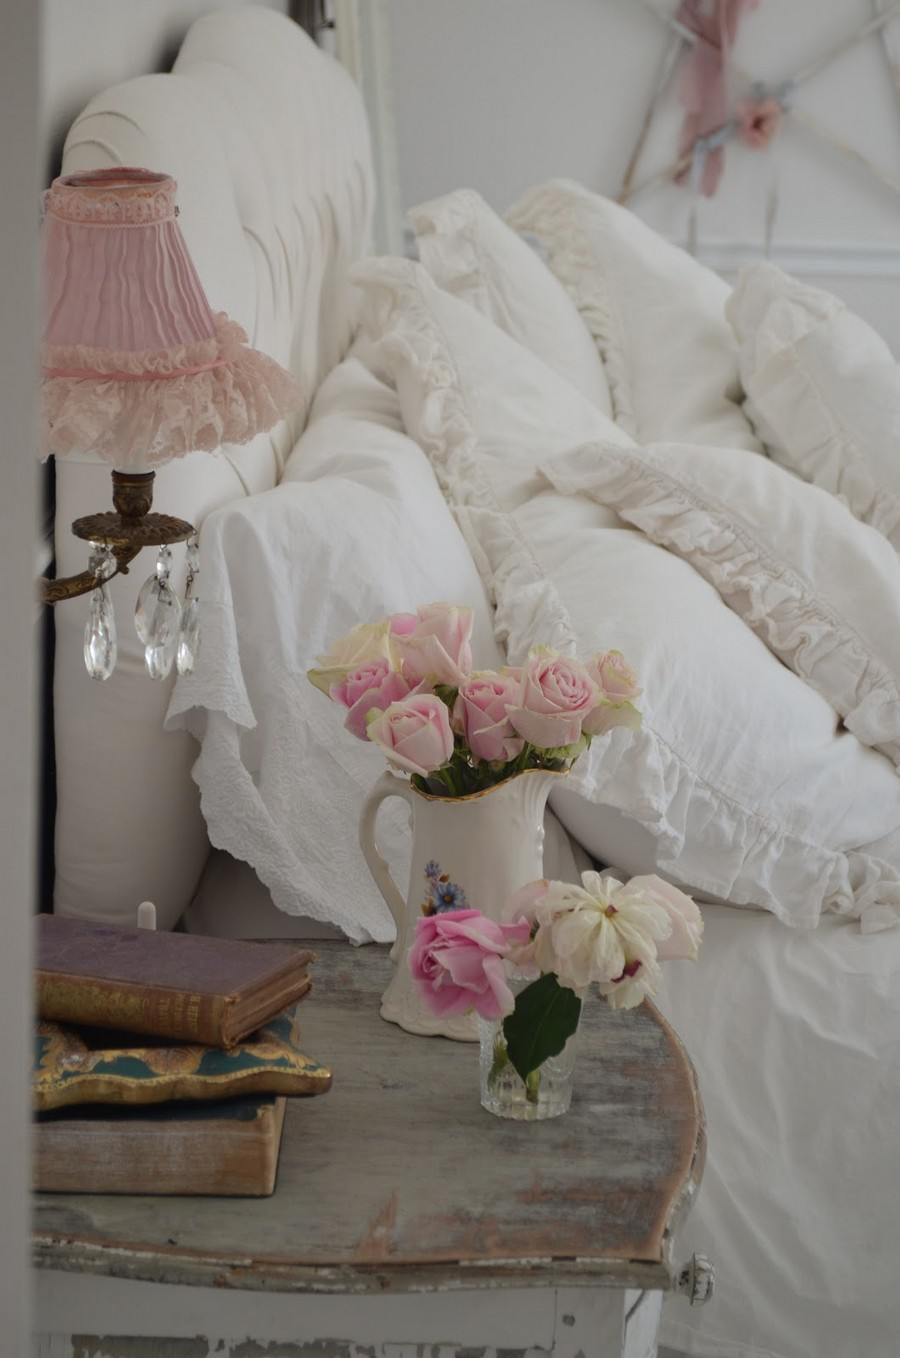 1-shabby-chic-style-interior-design-bedroom-white-pillows-laces-pale-pink-table-lamp-romantic-aged-wooden-bedside-table-nightstand-roses-jug-crystal-pendants-glass